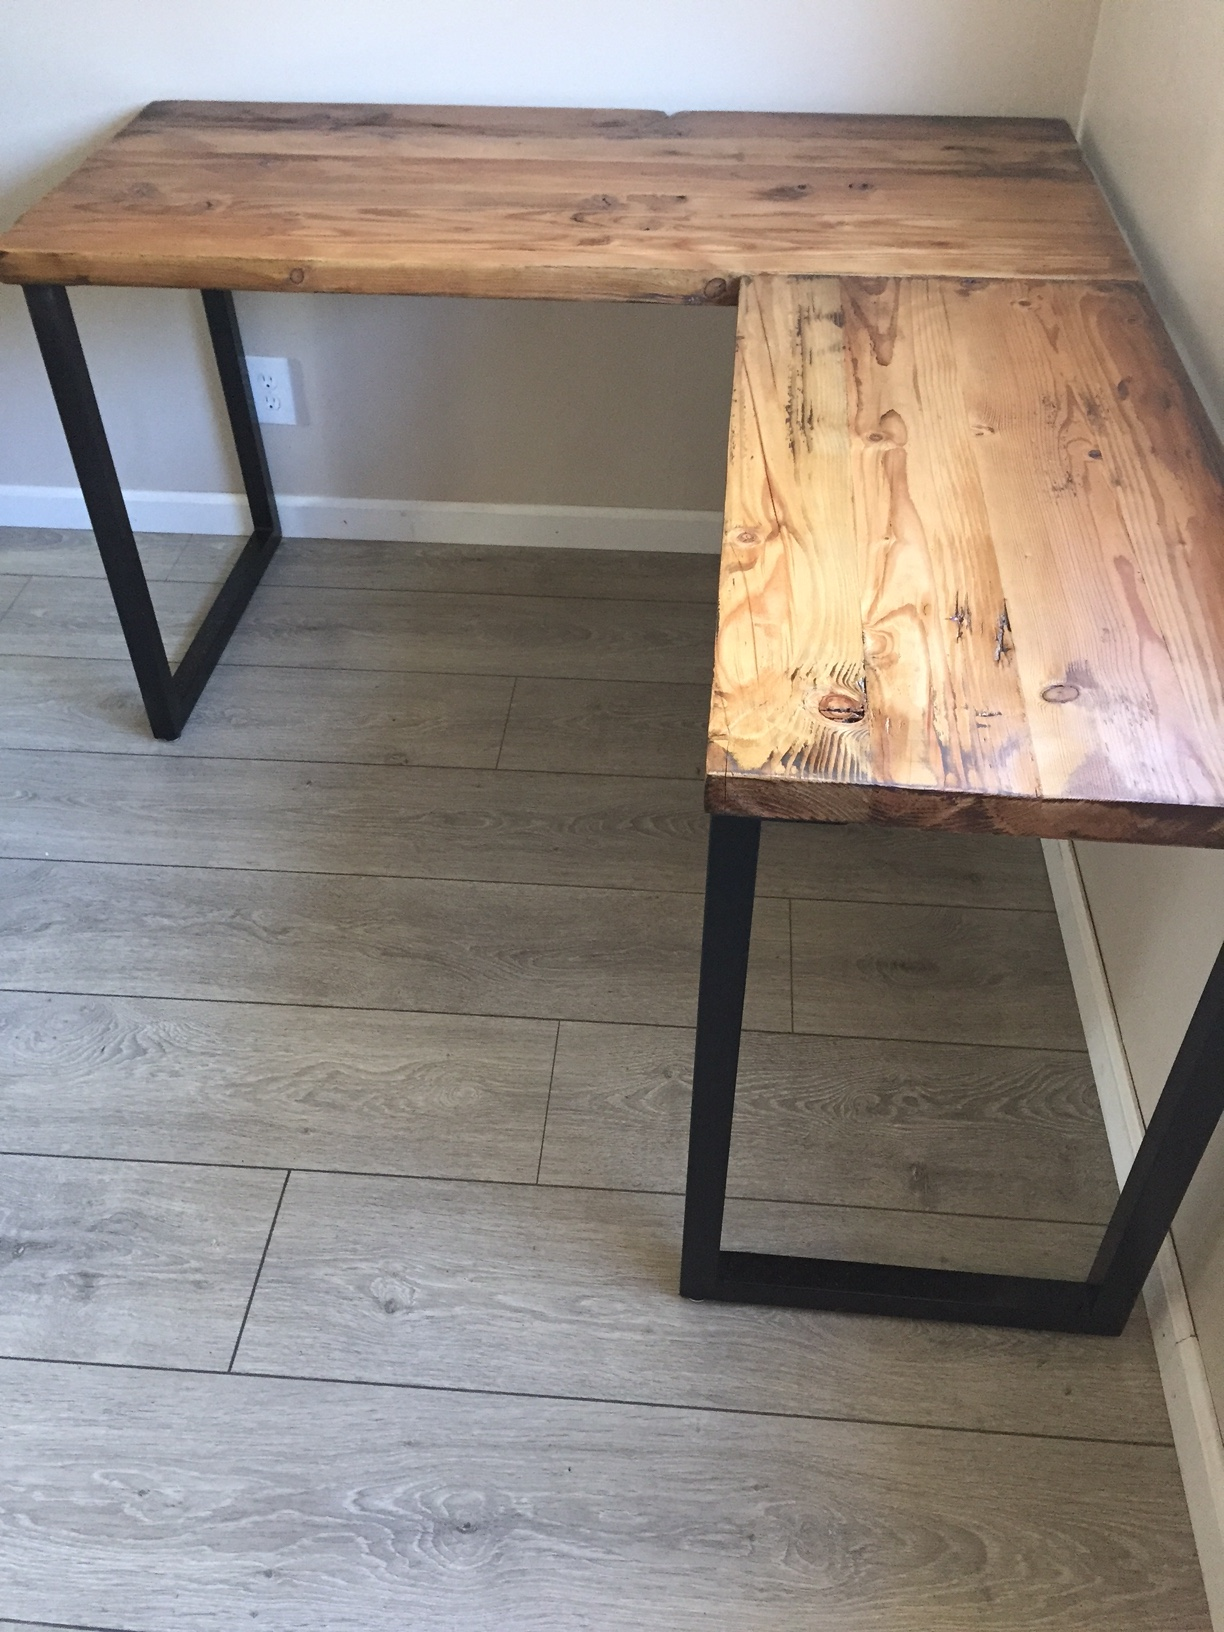 L Desk - Corner Desk - Reclaimed Wood - Metal Base